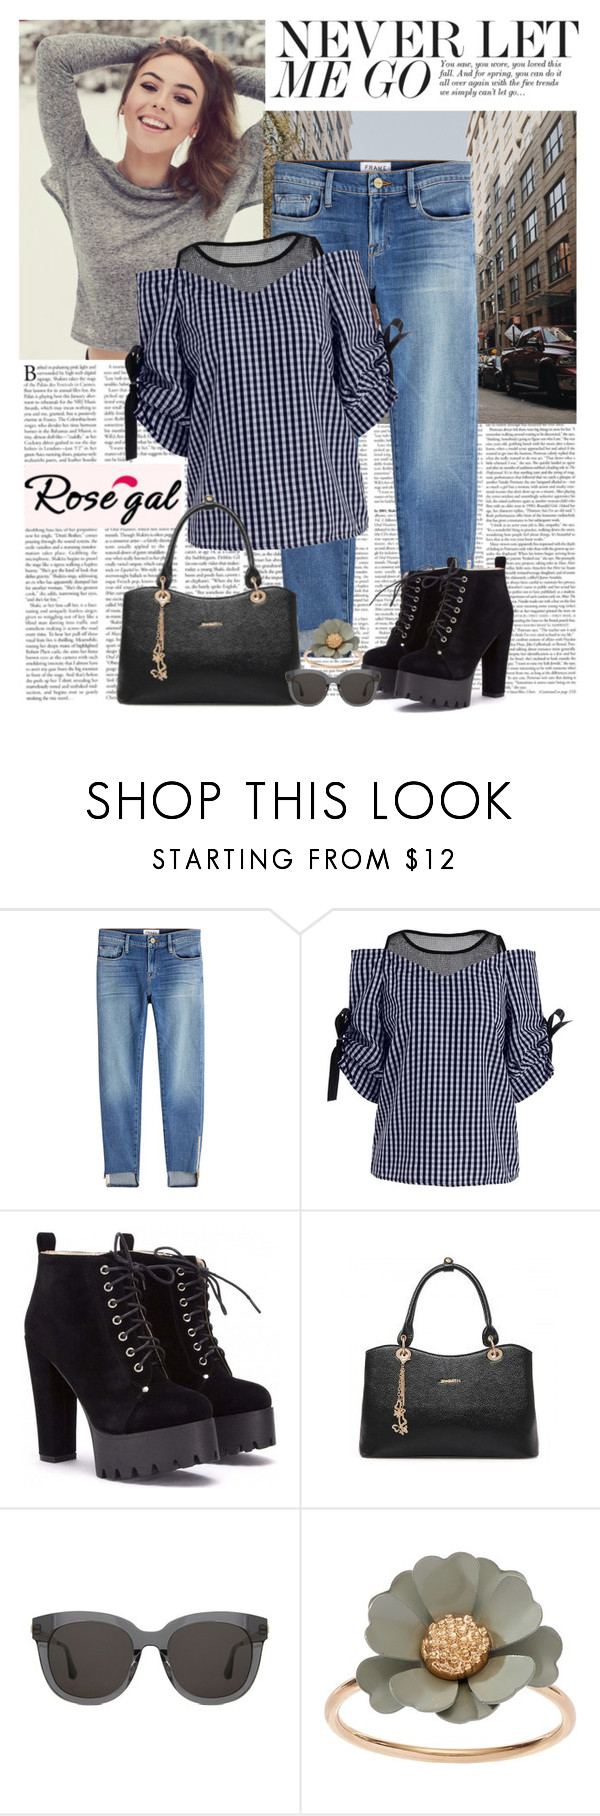 """""""Looking good"""" by polybaby ❤ liked on Polyvore featuring Frame, Gentle Monster and LC Lauren Conrad"""